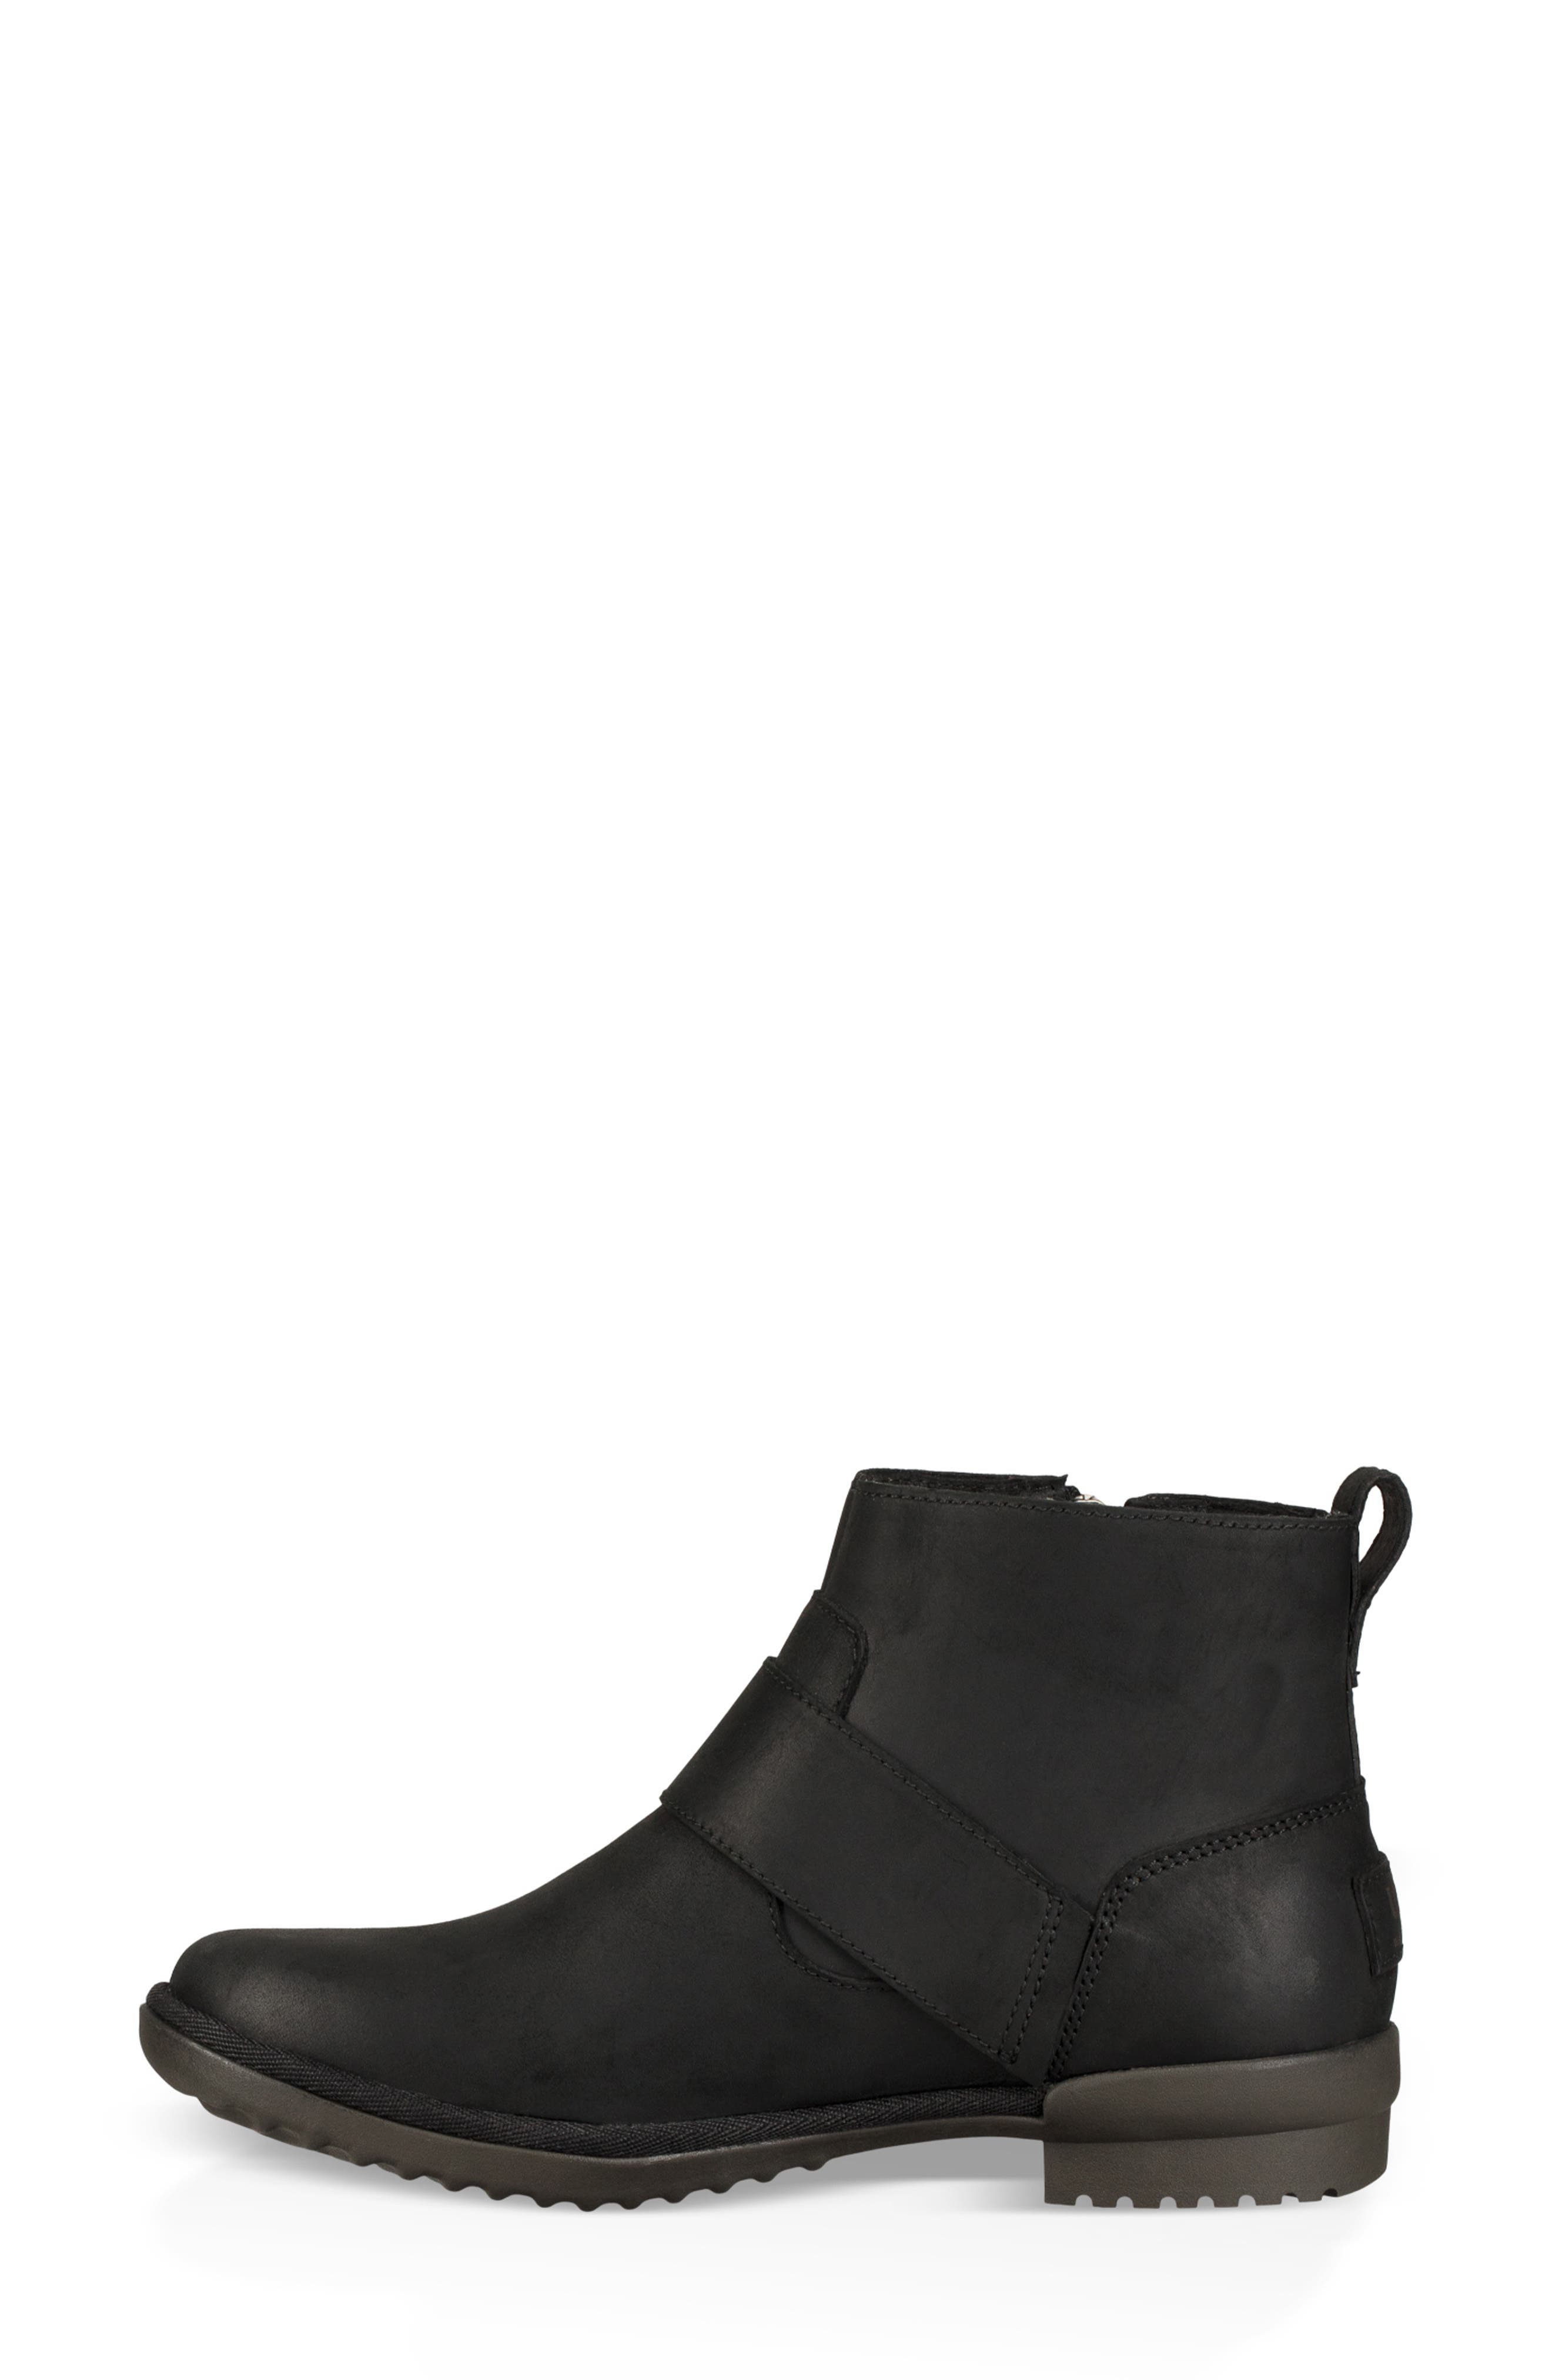 Cheyne Bootie,                             Alternate thumbnail 6, color,                             BLACK LEATHER